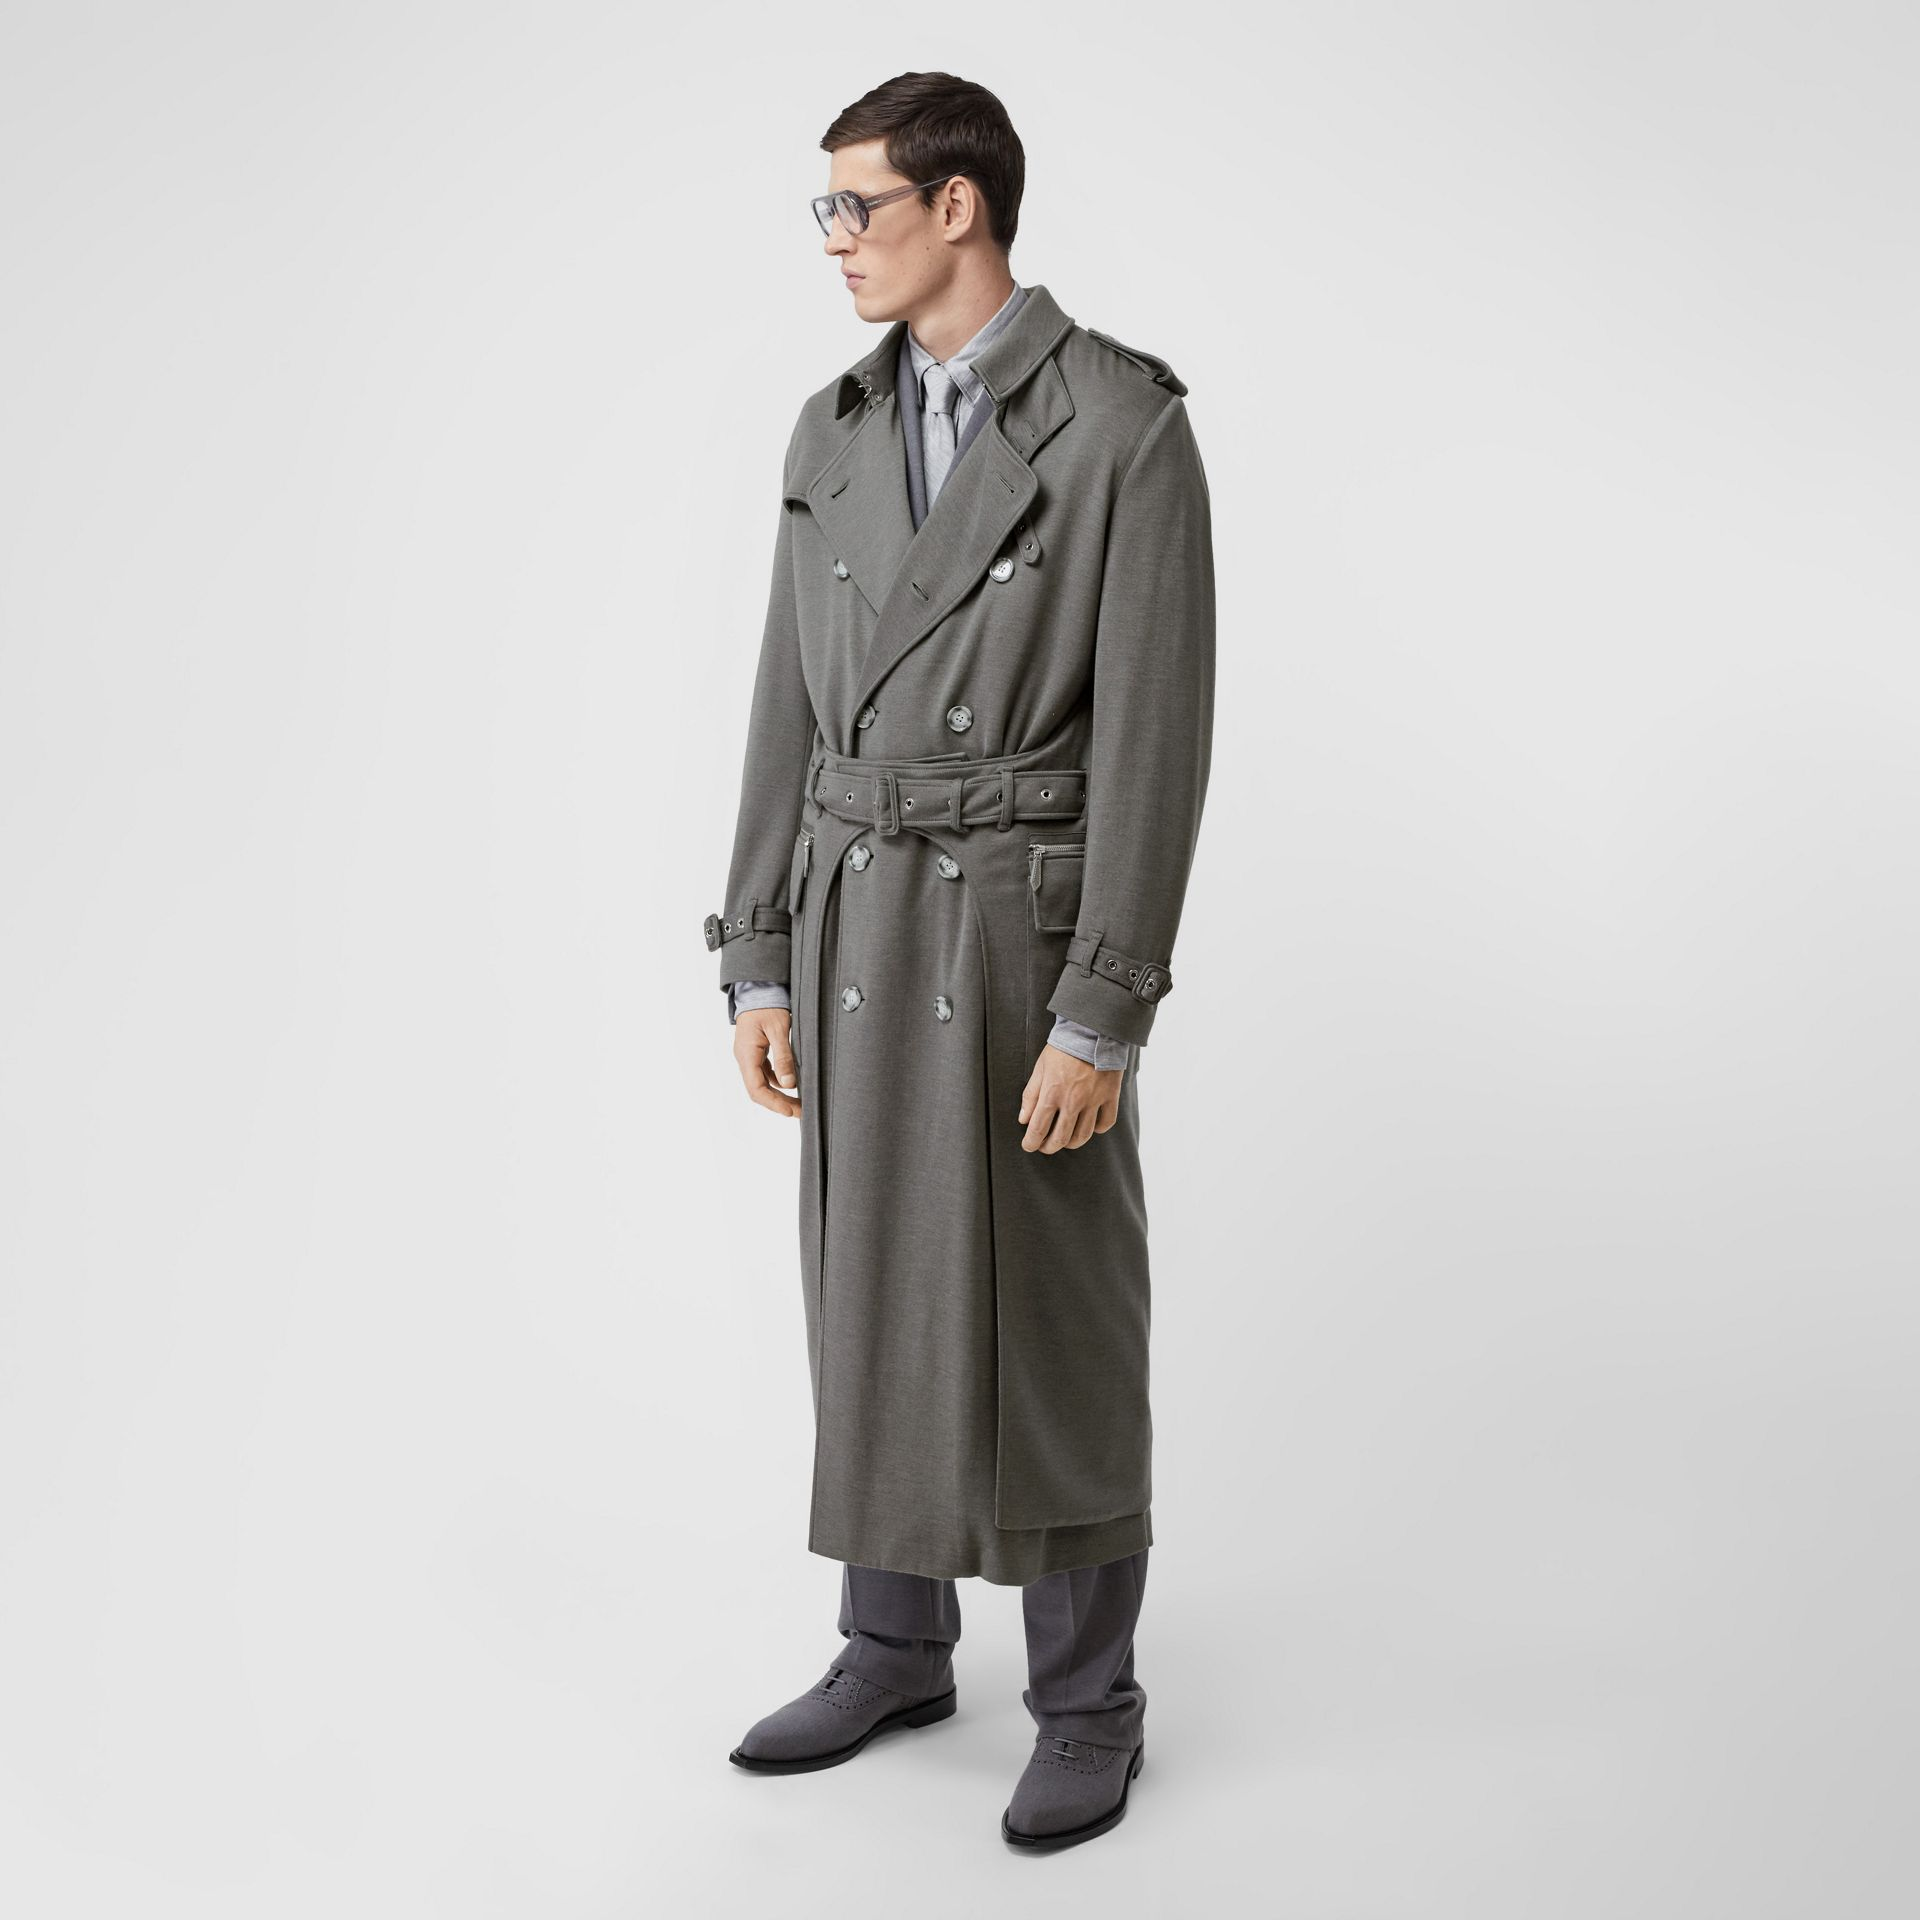 Cargo Pocket Detail Cashmere Silk Trench Coat in Cloud Grey - Men | Burberry - gallery image 6